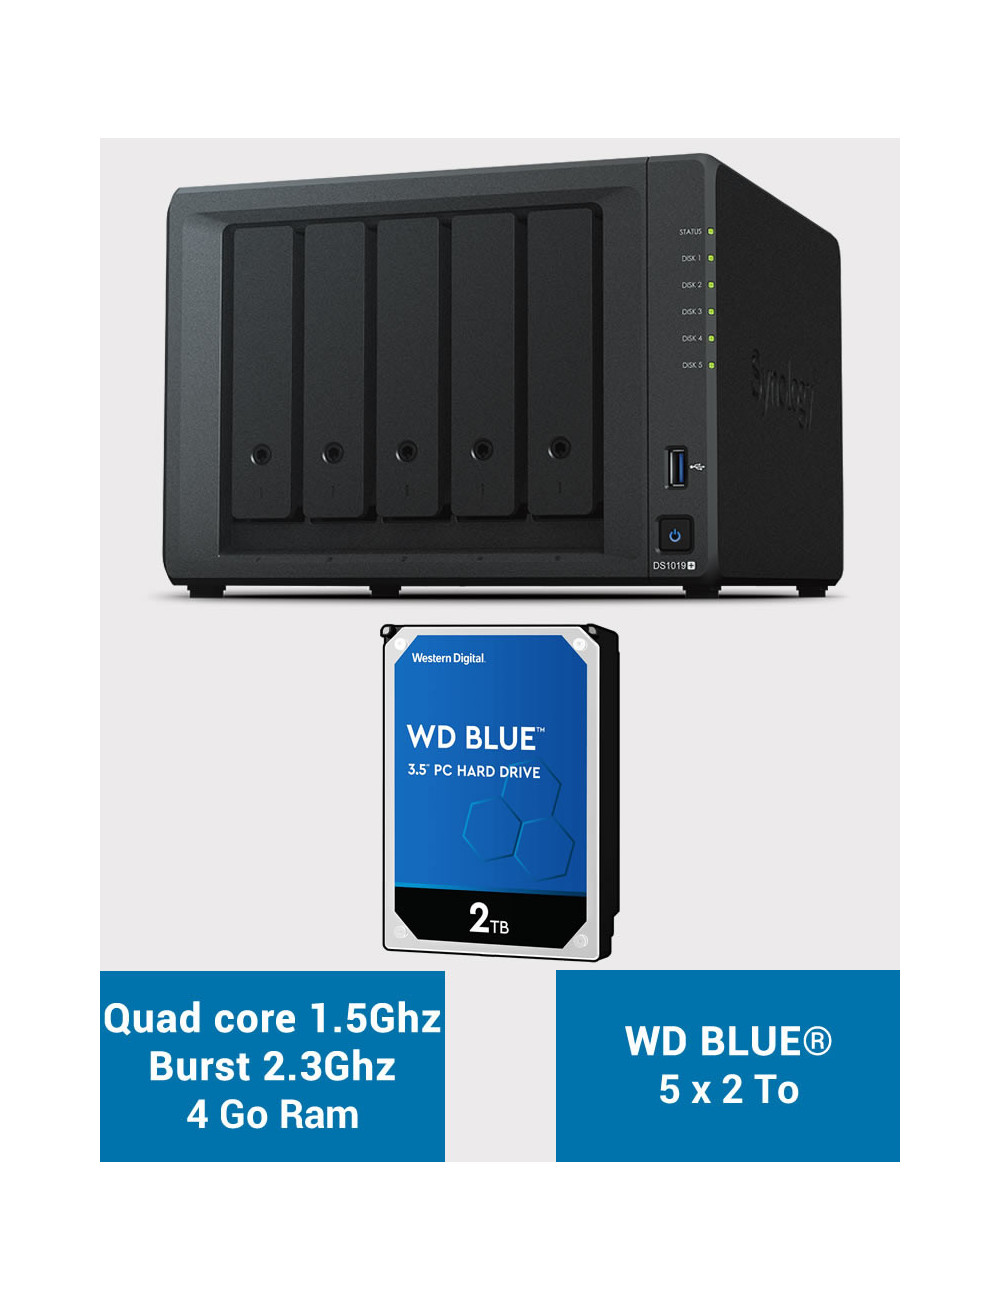 Synology DS1019+ Serveur NAS WD BLUE 10To (5x2To)